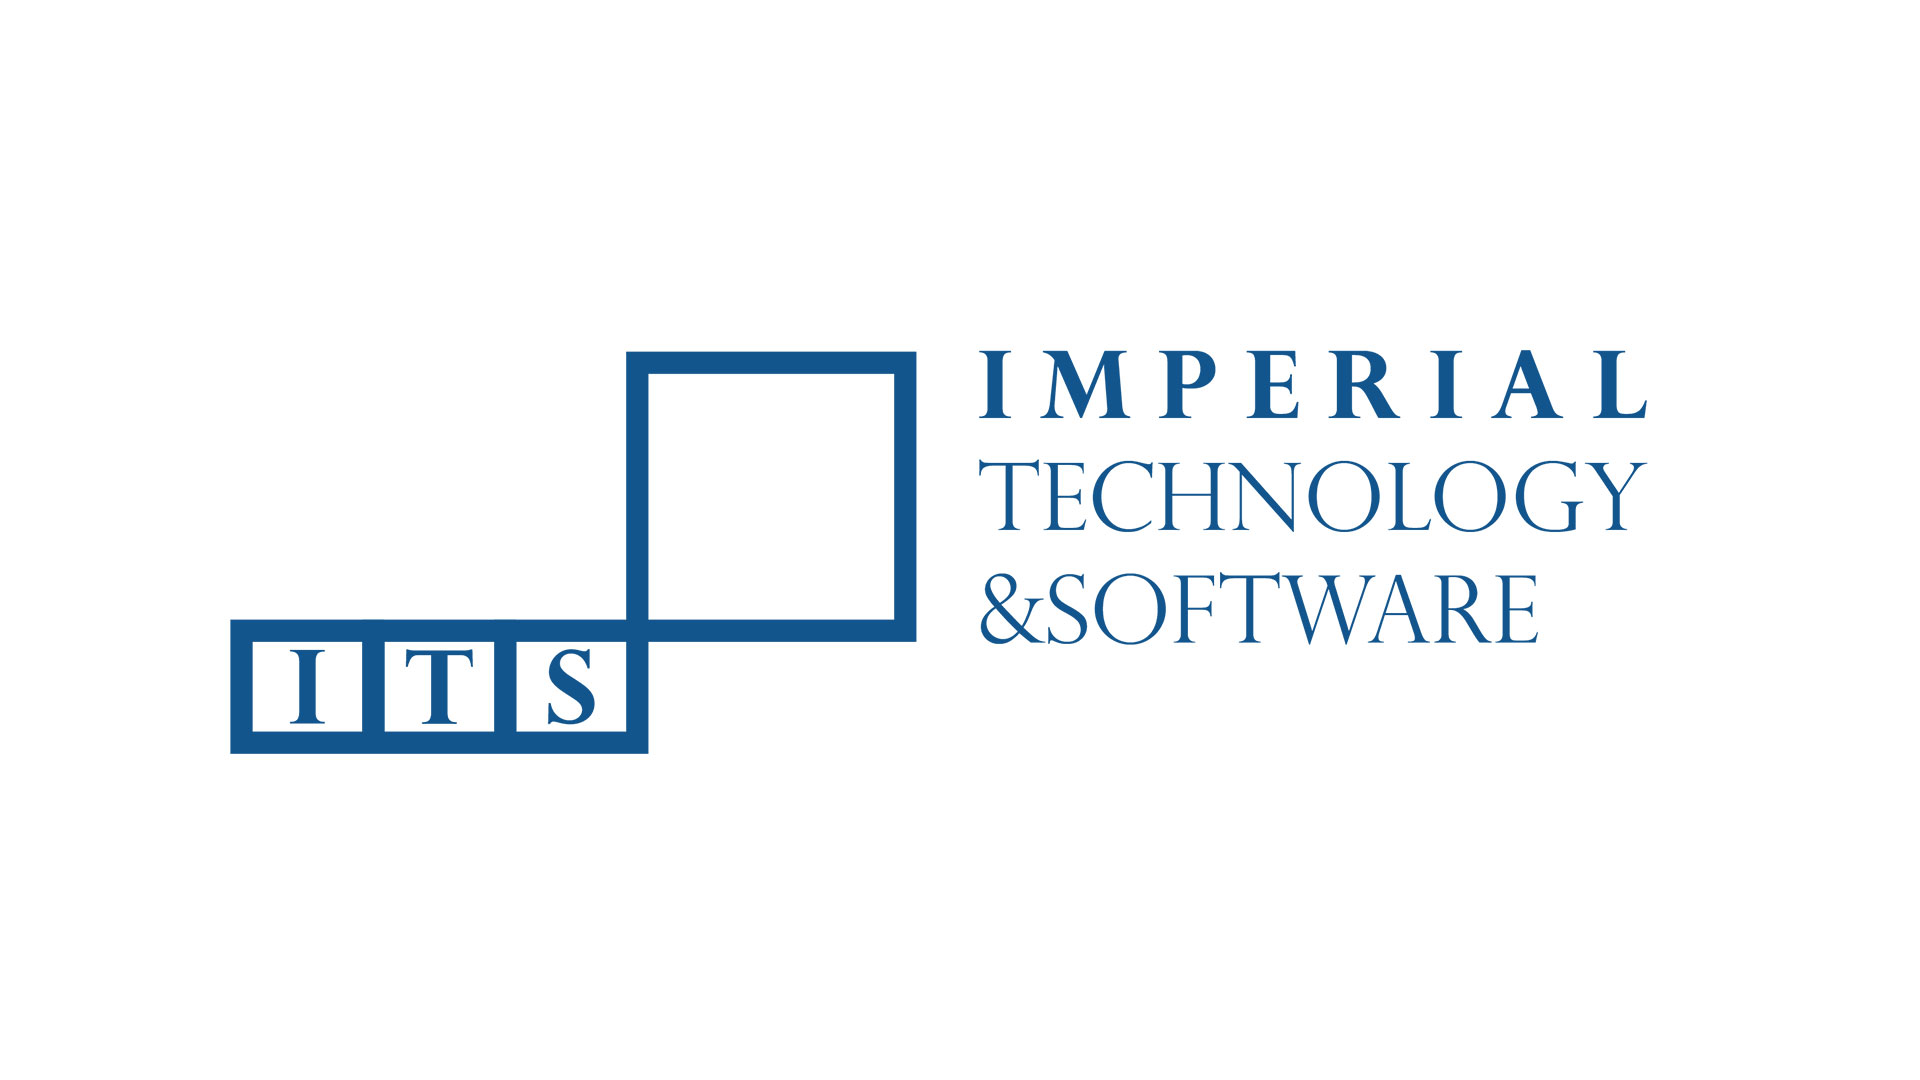 Imperial technology & software